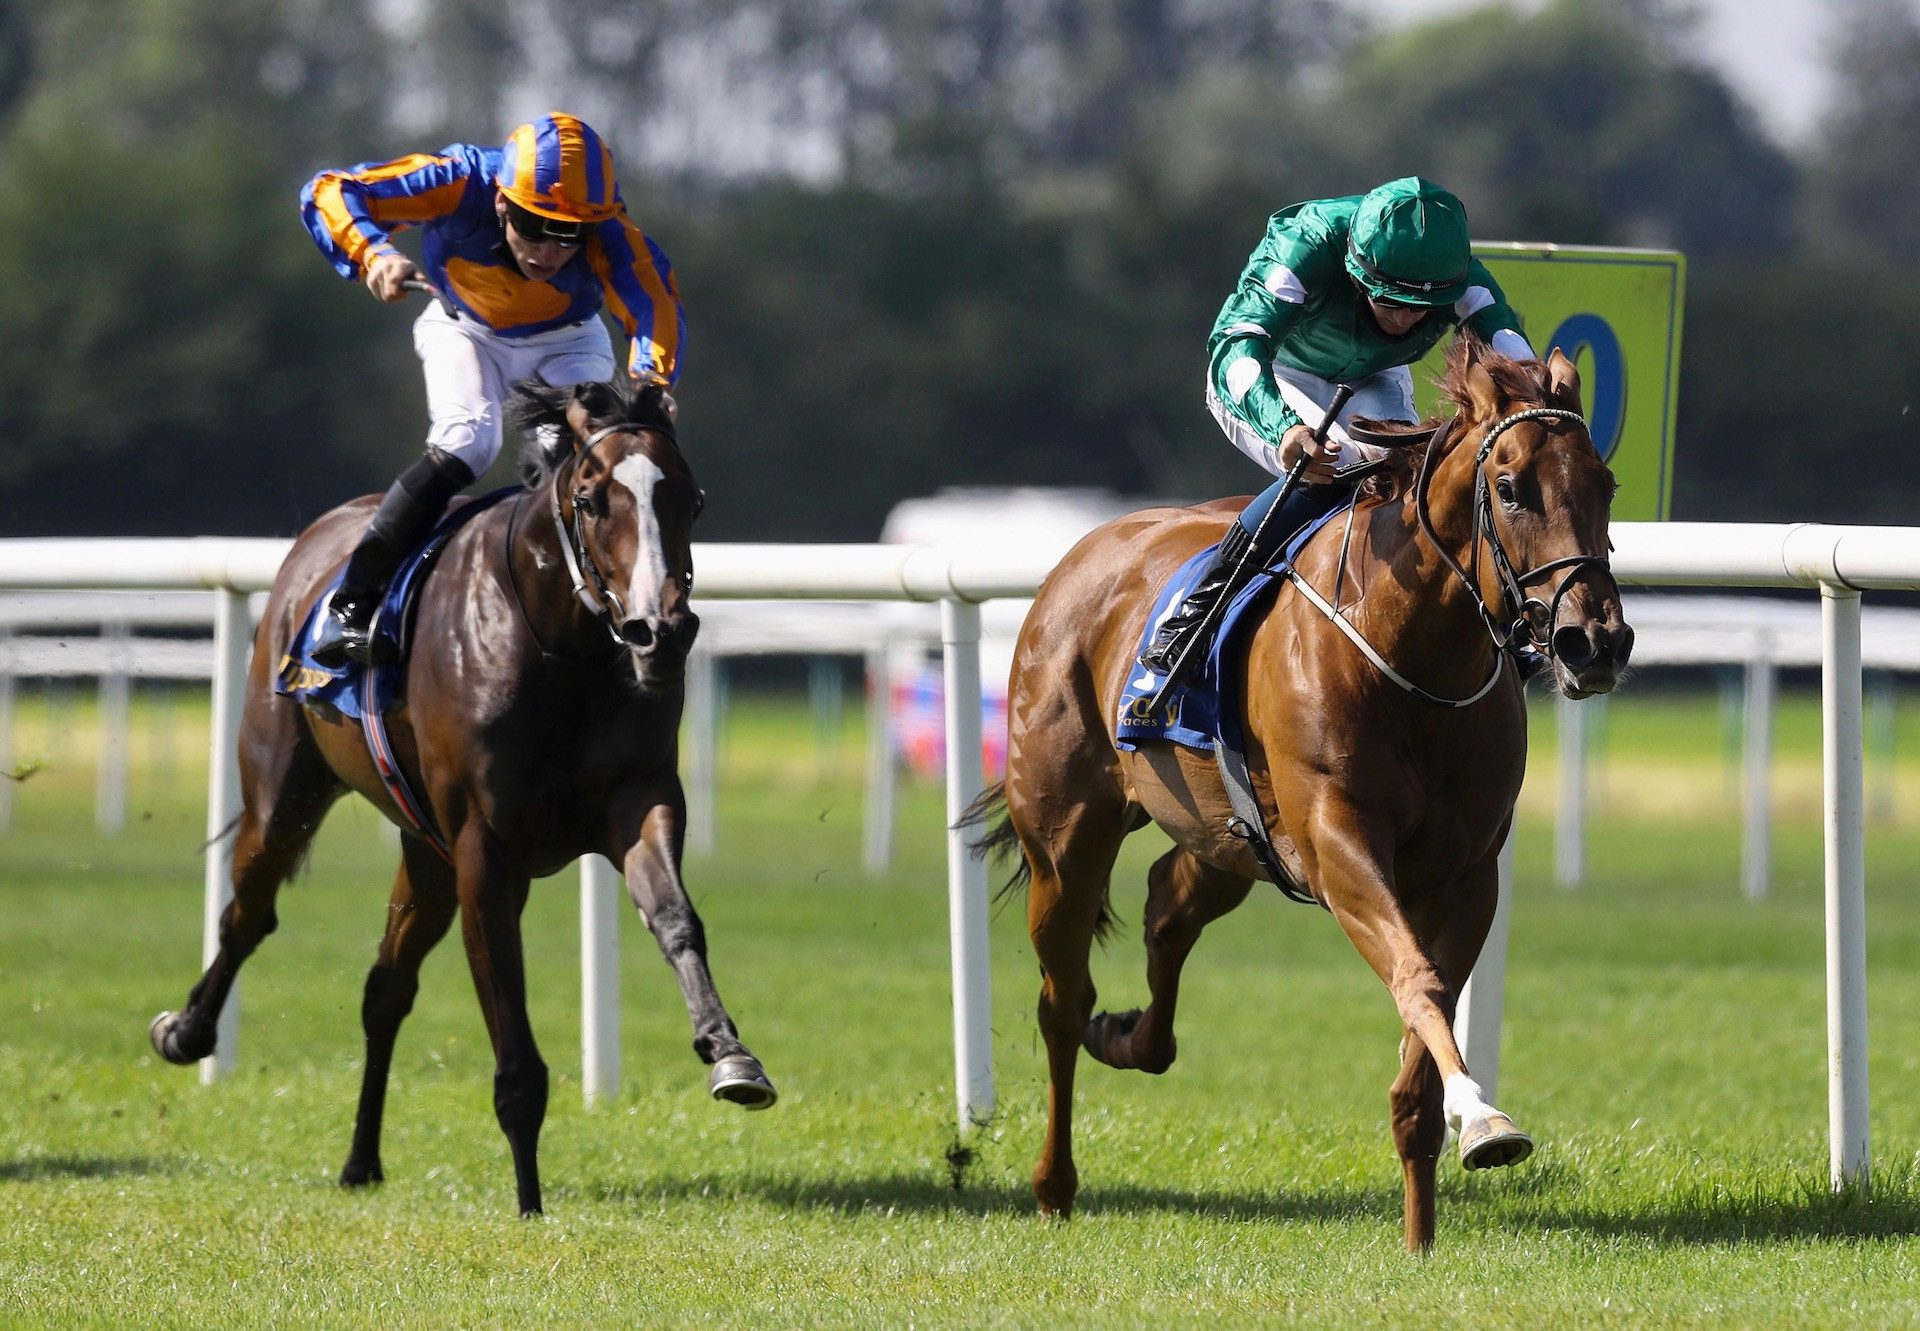 Ladies Church (Churchill) Wins The Fillies Maiden At Tipperary